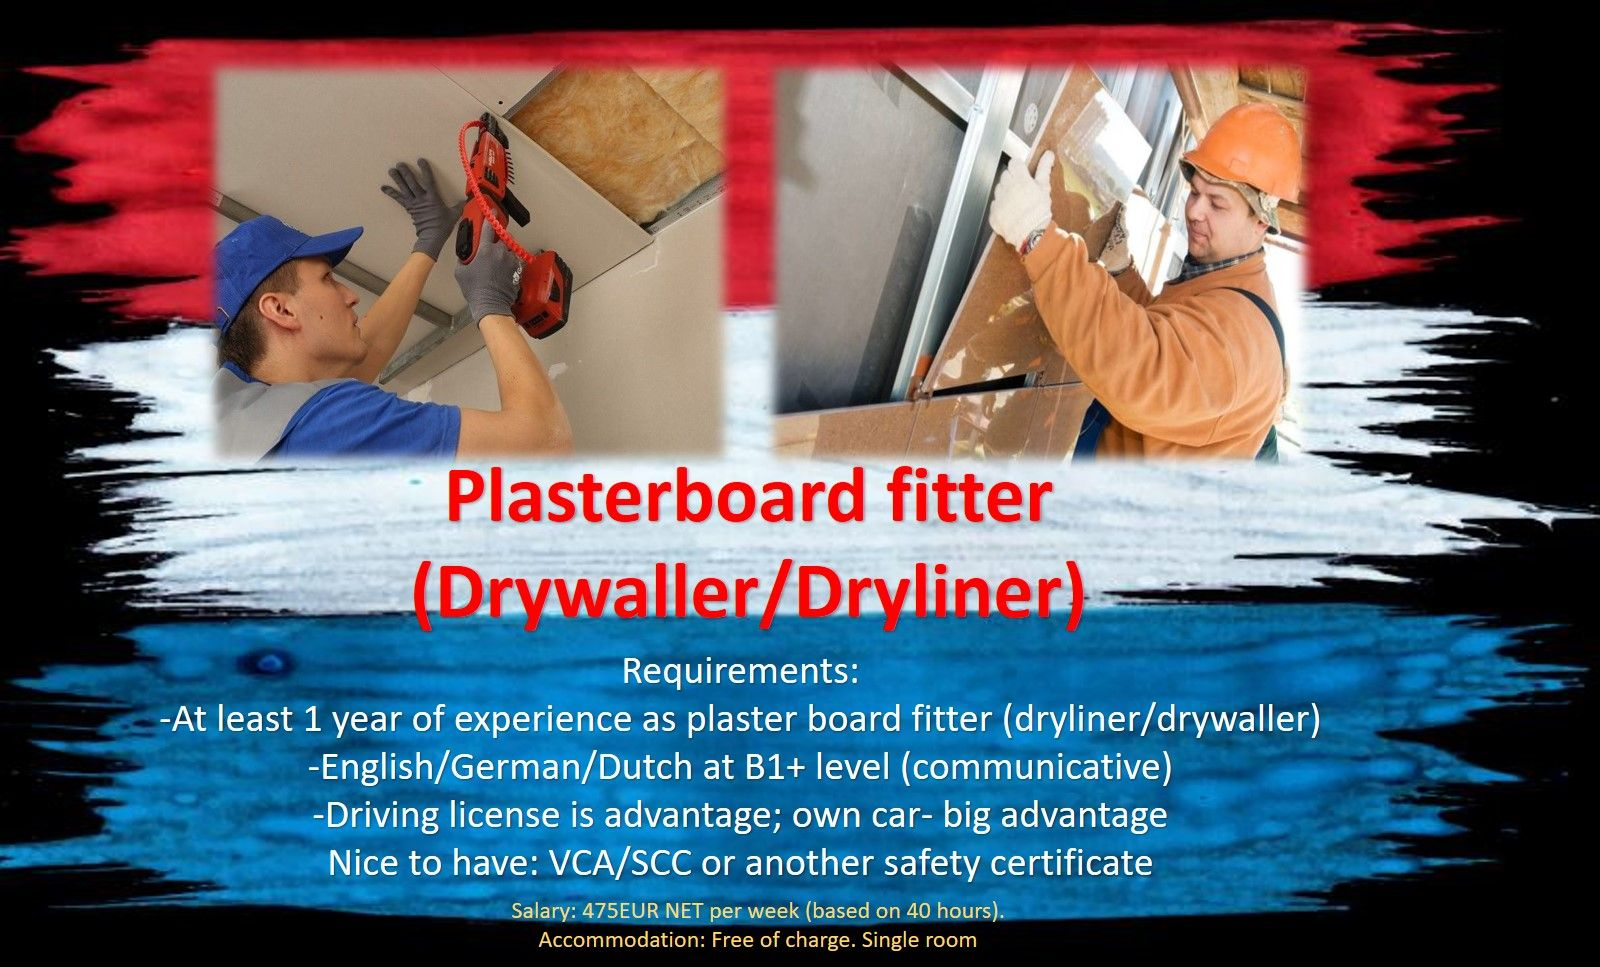 Plasterboard fitter  dryliner drywaller job work Holland, the Netherlands Rotterdam, Amsterdam, Eindhoven